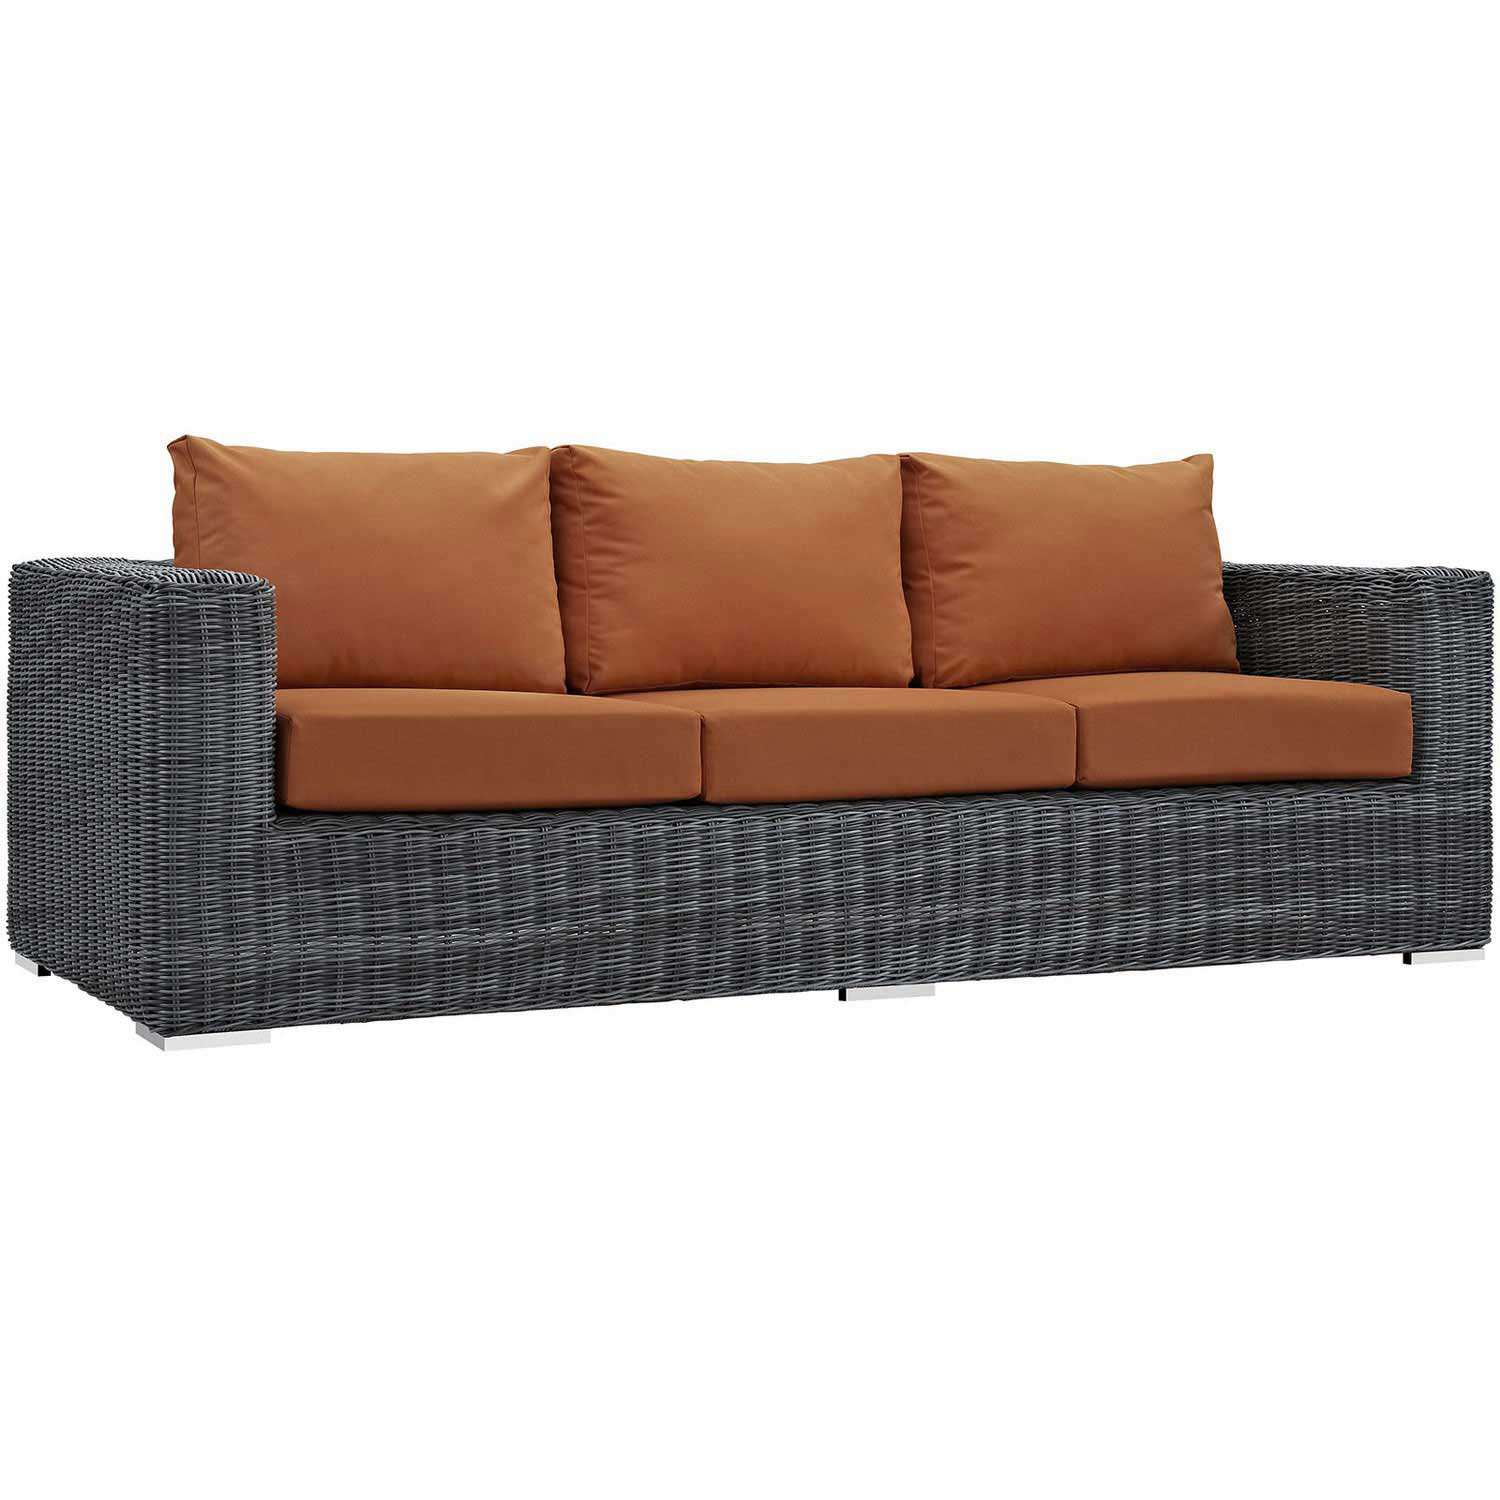 Modway Summon Outdoor Patio Sunbrella Sofa - Canvas Tuscan